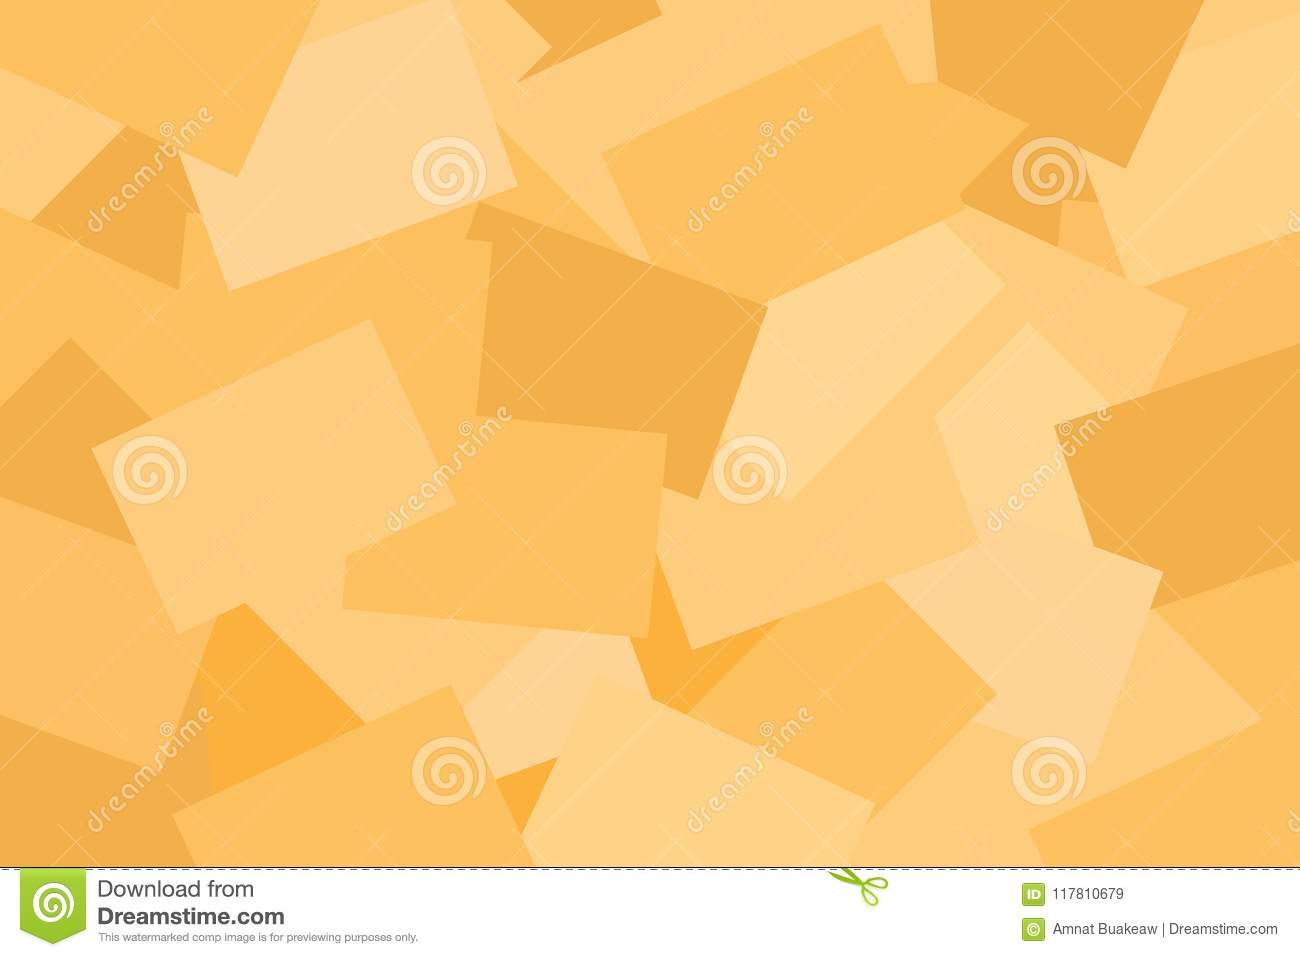 Abstract Paper Brown Pastel Colorful Geometric Flat Lay